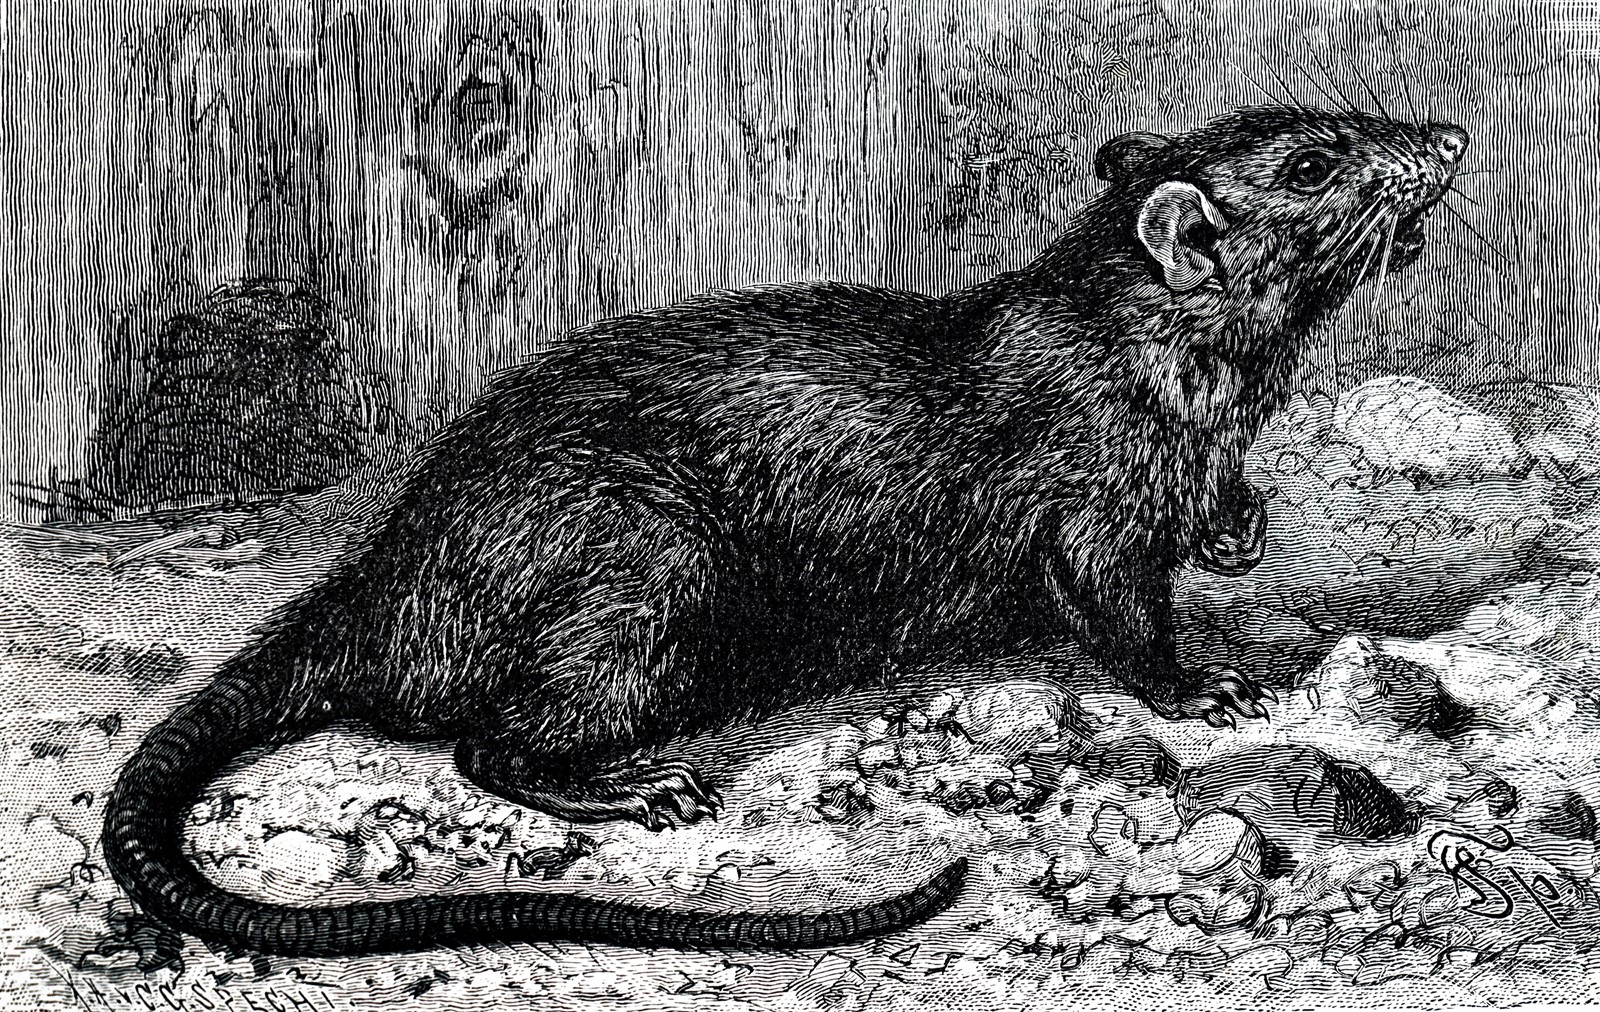 Print A Comeback For Plague Climate Change Could Create Conditions Favorable To The Disease Bubonic Plaguehas Been Spread In Past Epidemics By Rats Carrying Infected Fleas Universal History Archive Previous Image Image Next Image By